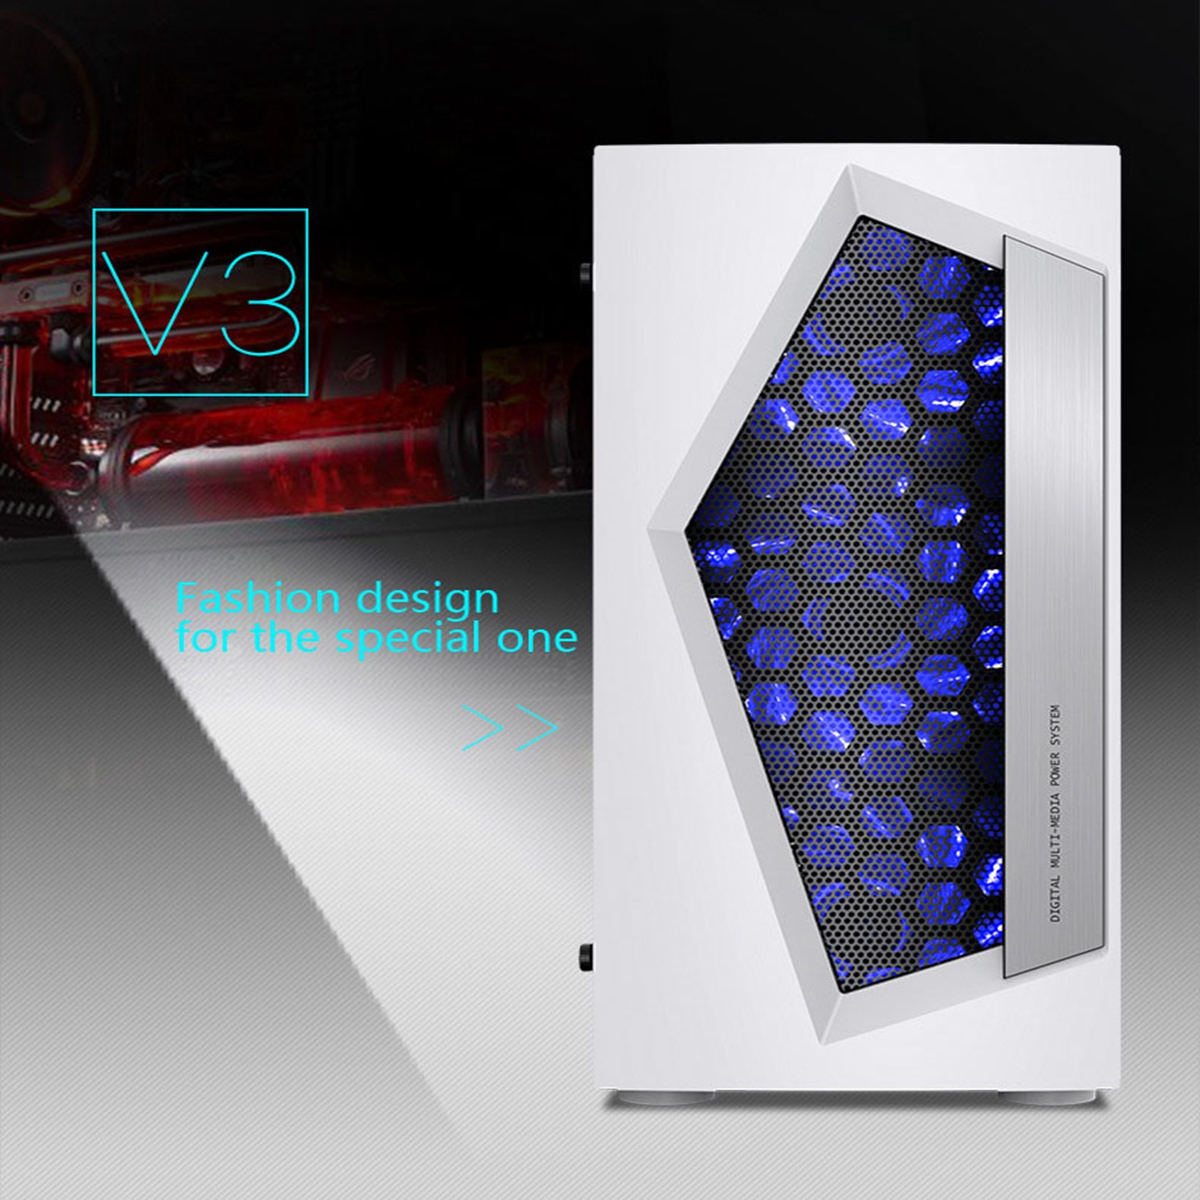 купить V3 ATX Computer Gaming PC Case 8 Fan Ports USB3.0 For M-ATX/Mini ITX Motherboard Mid Tower Water Cooling Enclosure по цене 5366.28 рублей